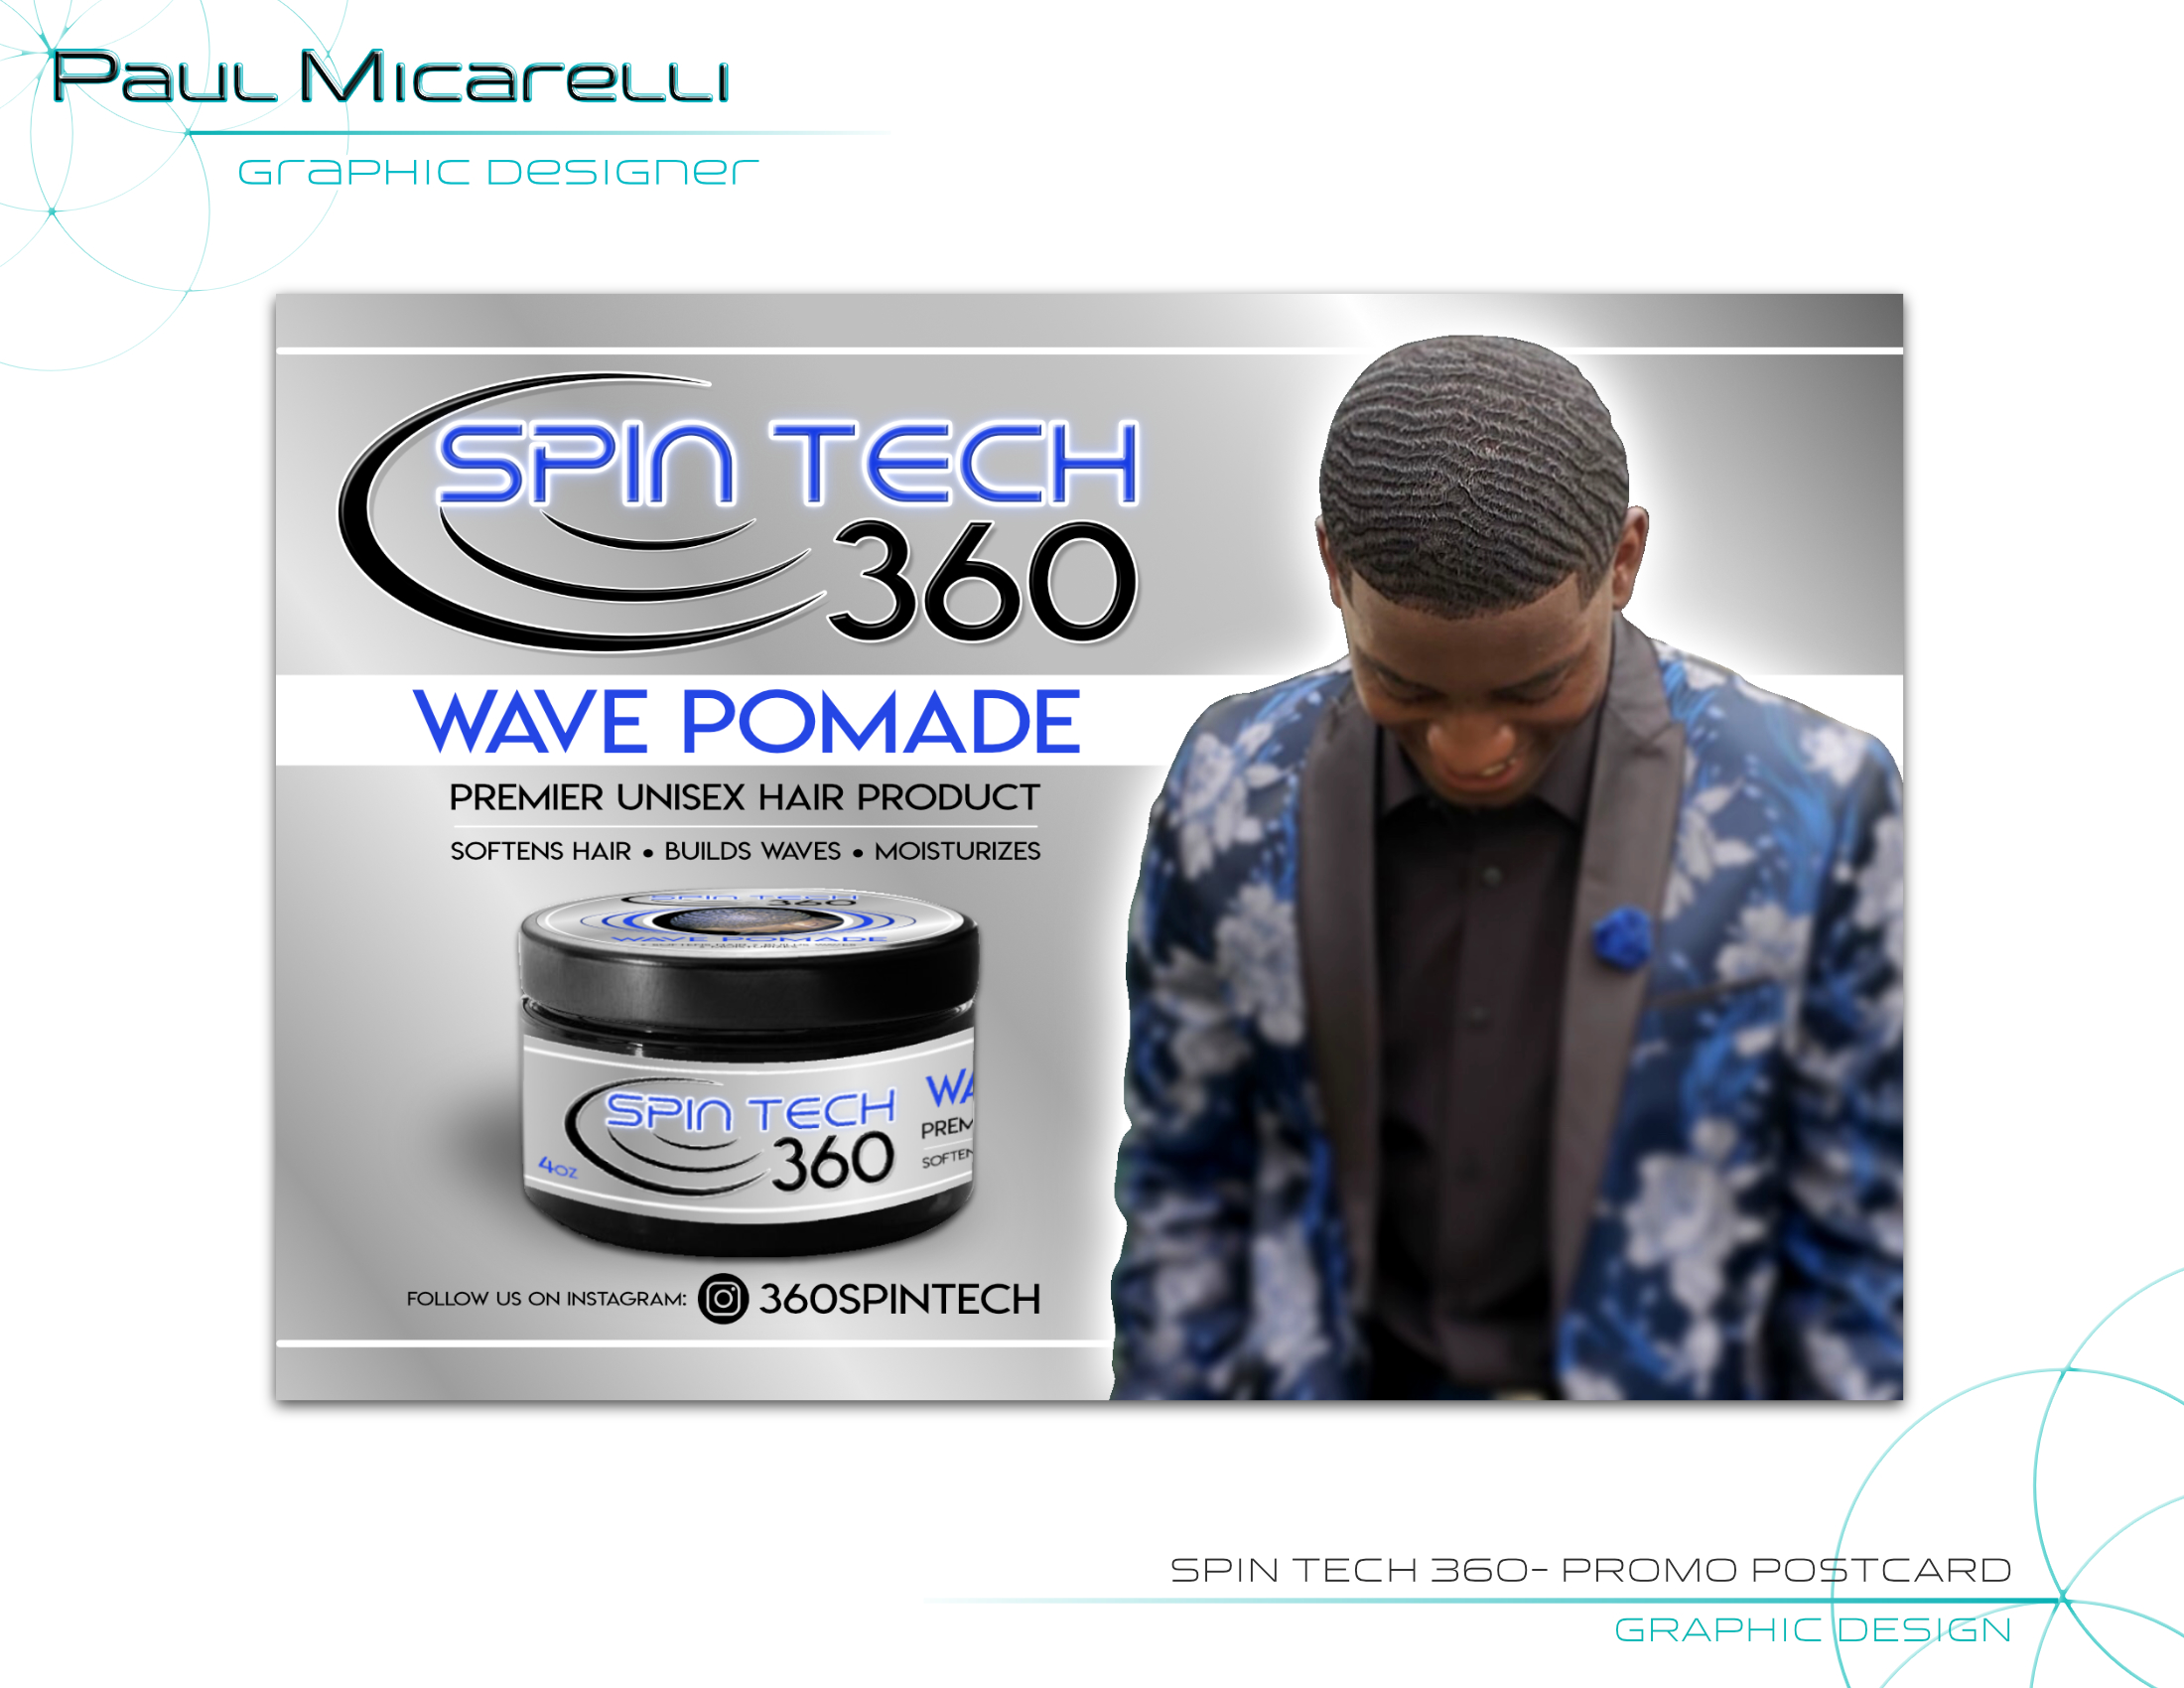 Paul-Micarelli-Spin Tech 360-Postcard